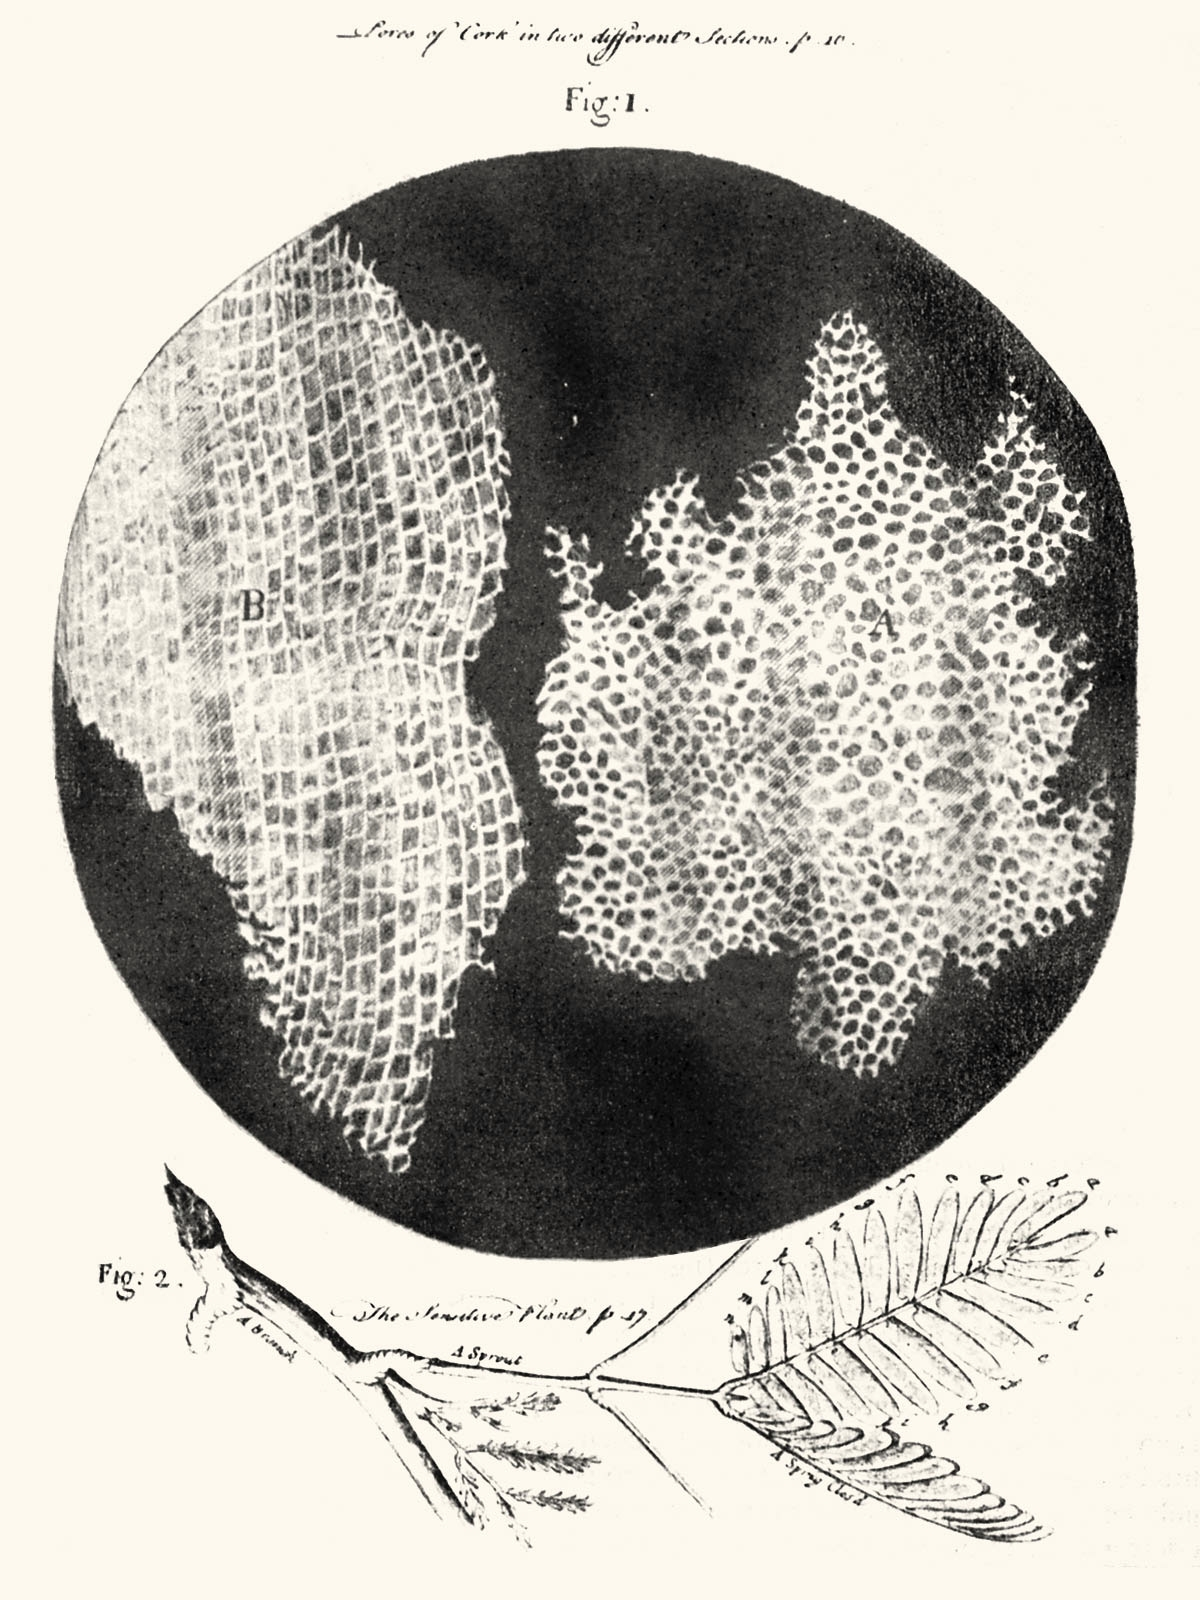 A section of cork, from Hooke, Micrographia (see Exhibit 11). Photo by Curator, from the copy at the University of Michigan Special Collections.